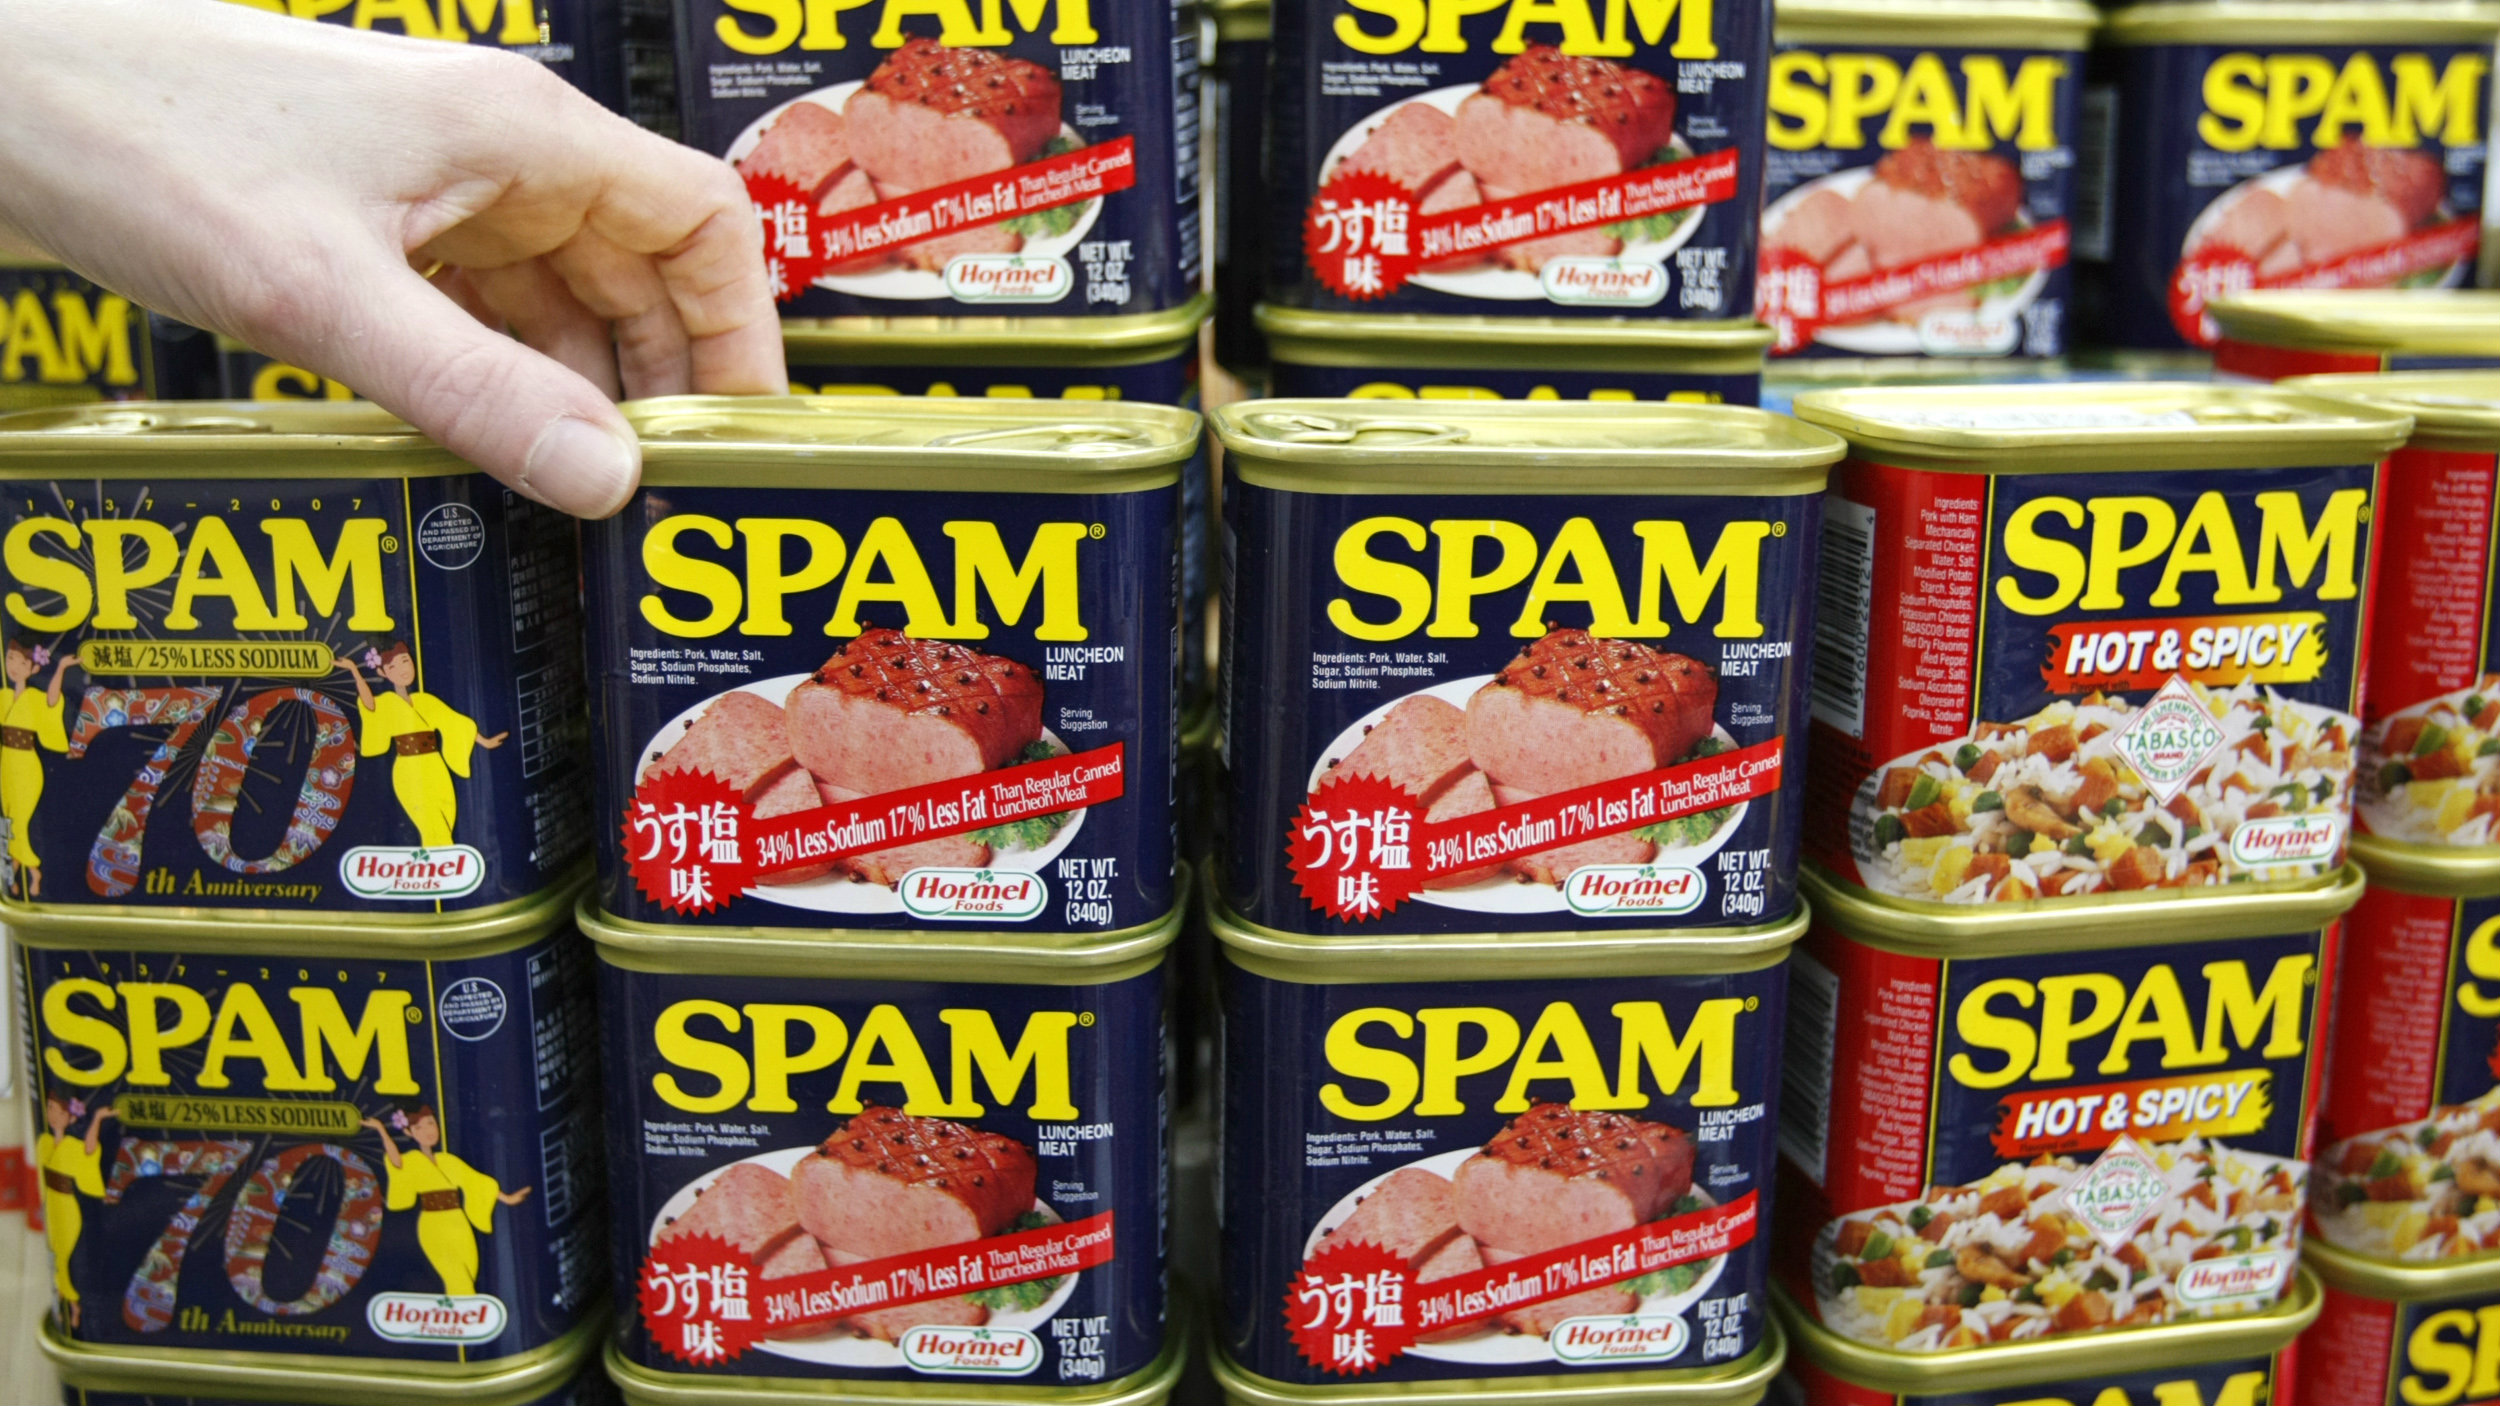 Now coming to food trucks: high-end Spam